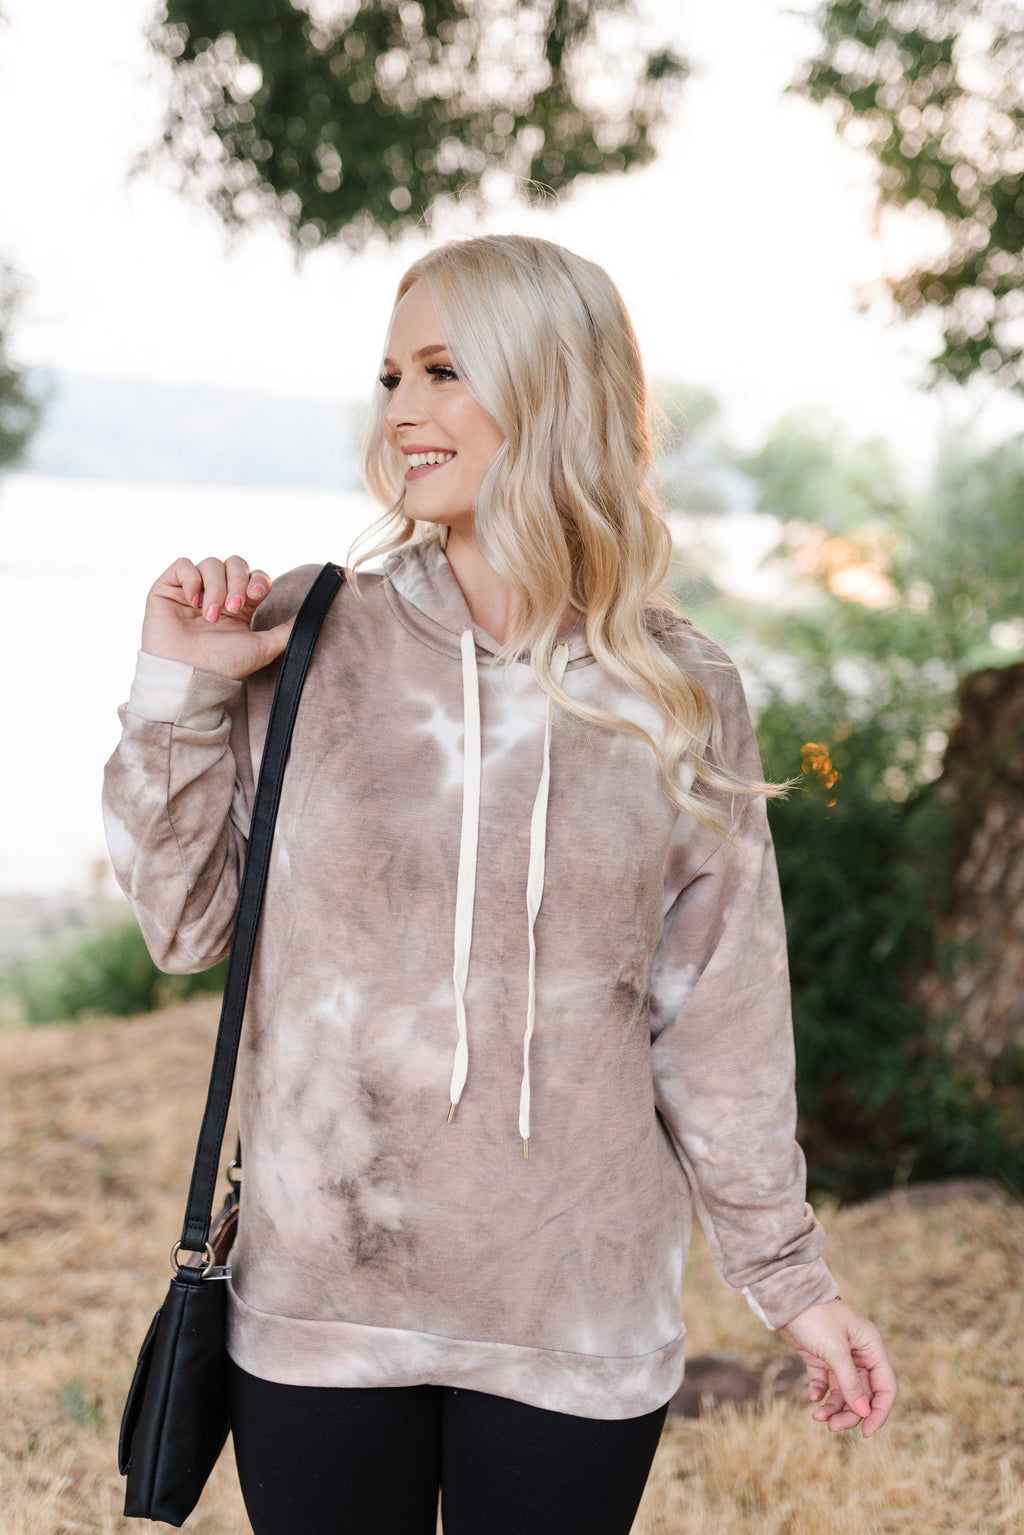 Mocha Dreams Tie Dye Sweatshirt